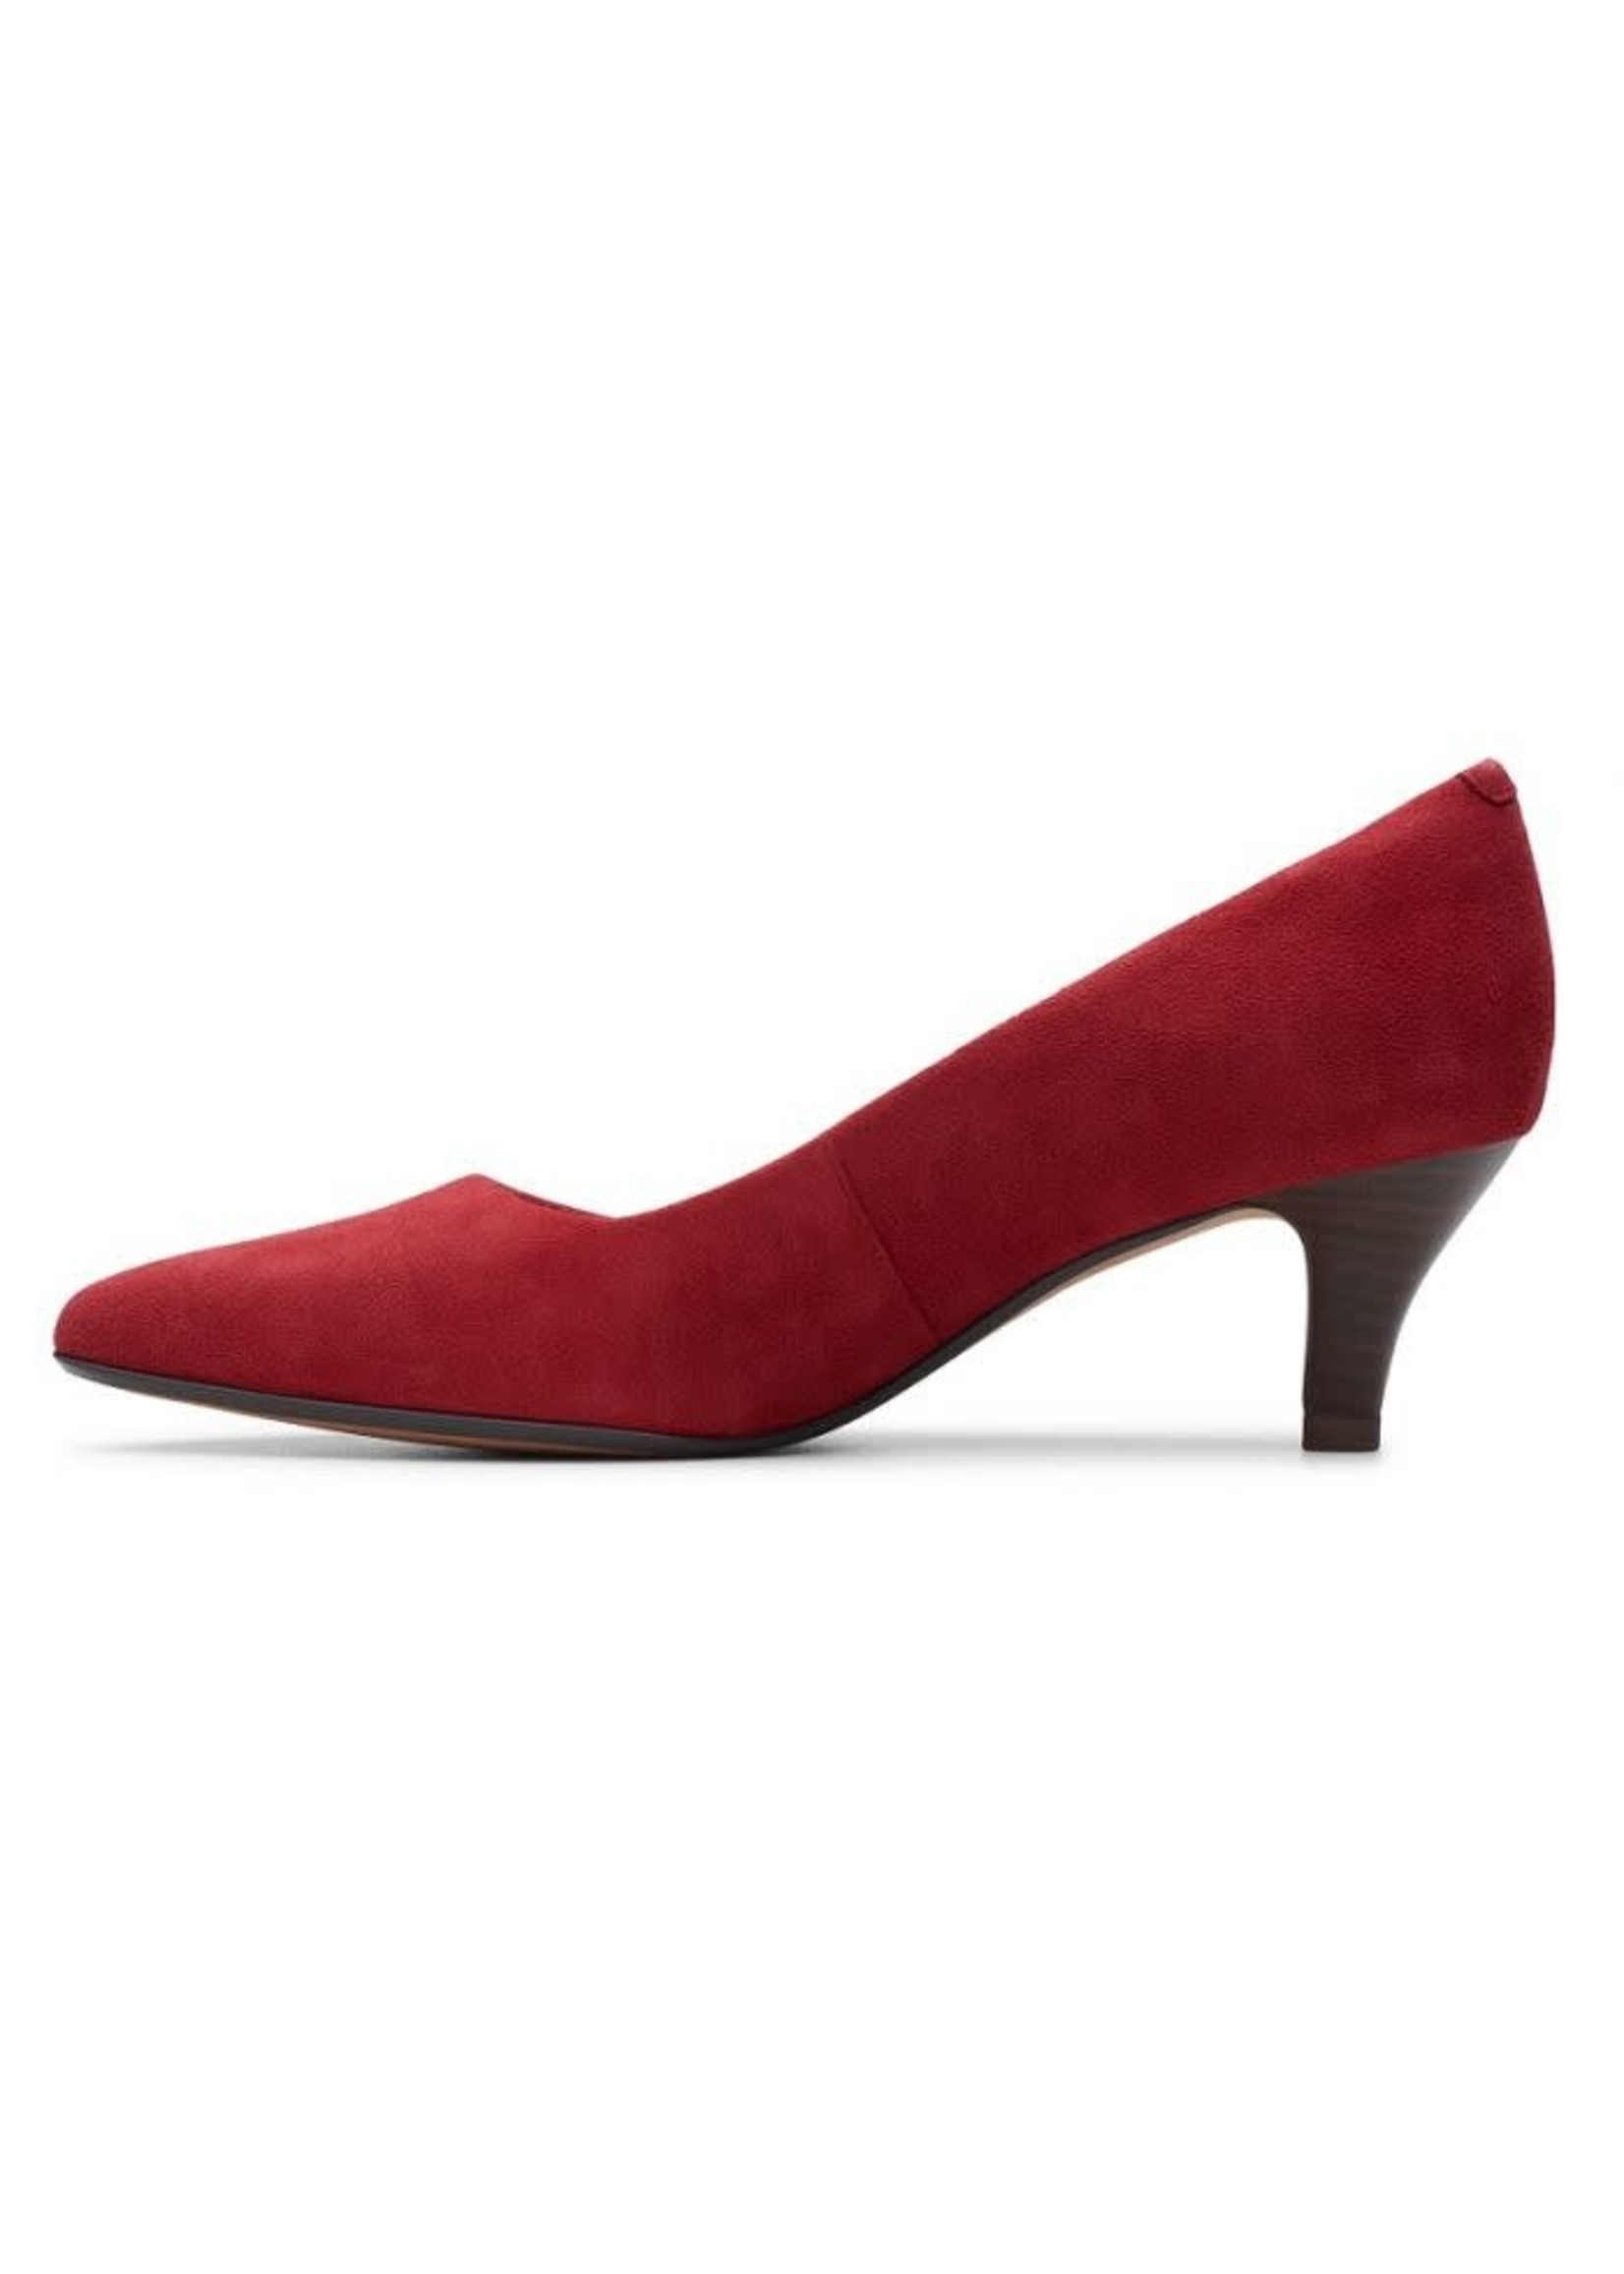 Clarks Linvale Jerica Cherry Red Pump